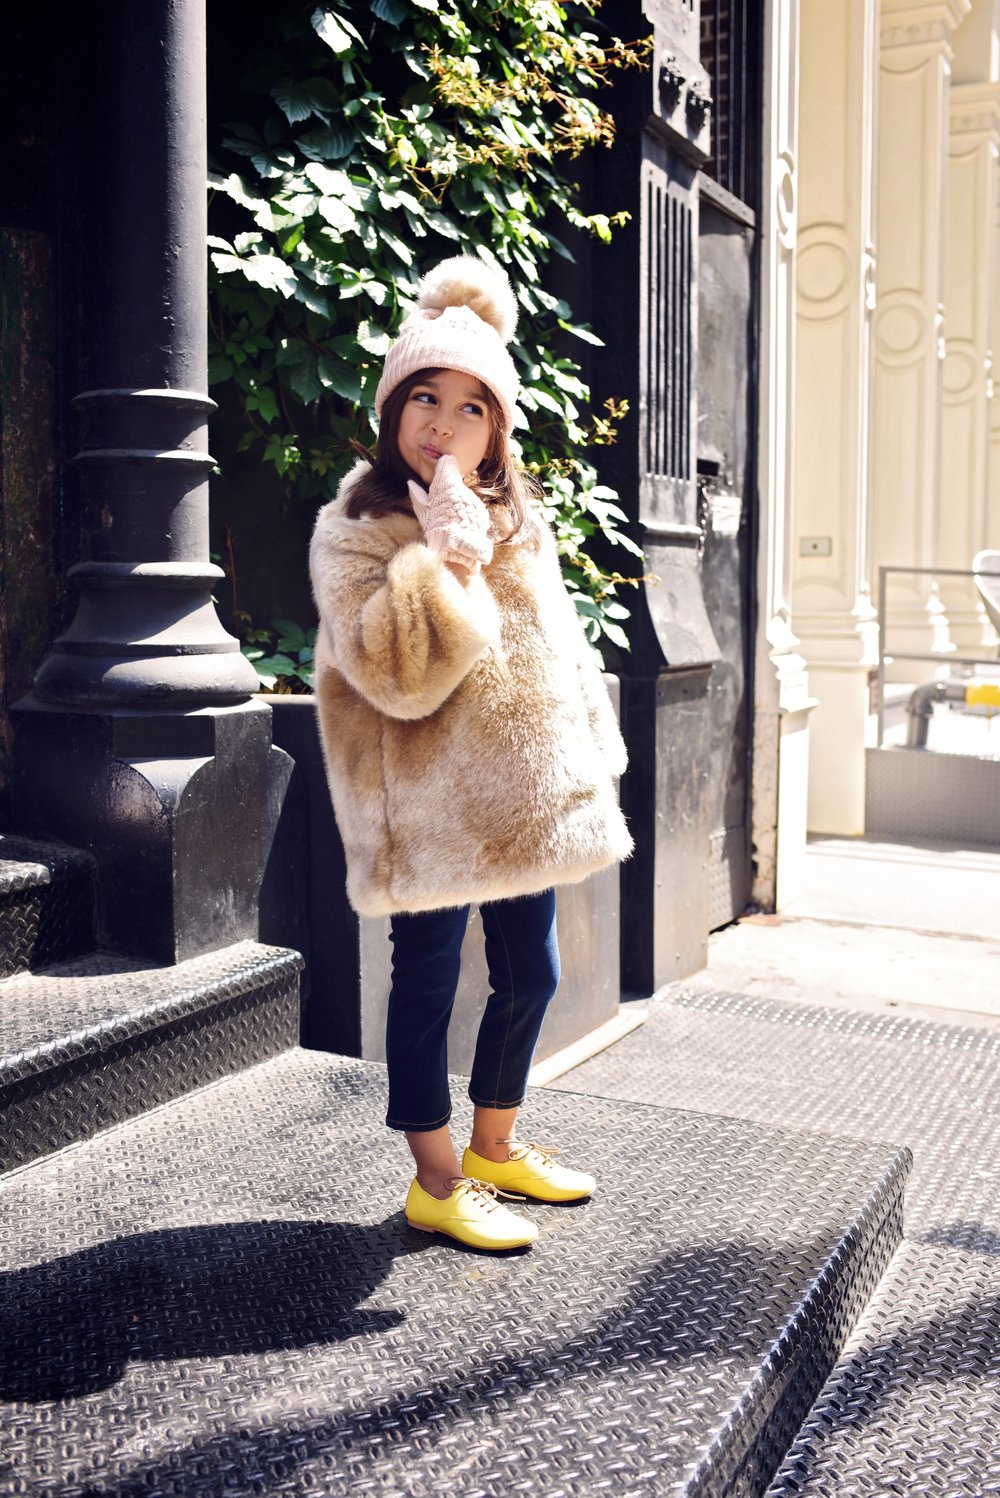 Enfant+Street+Style+by+Gina+Kim+Photography+Hucklebones-1.jpeg